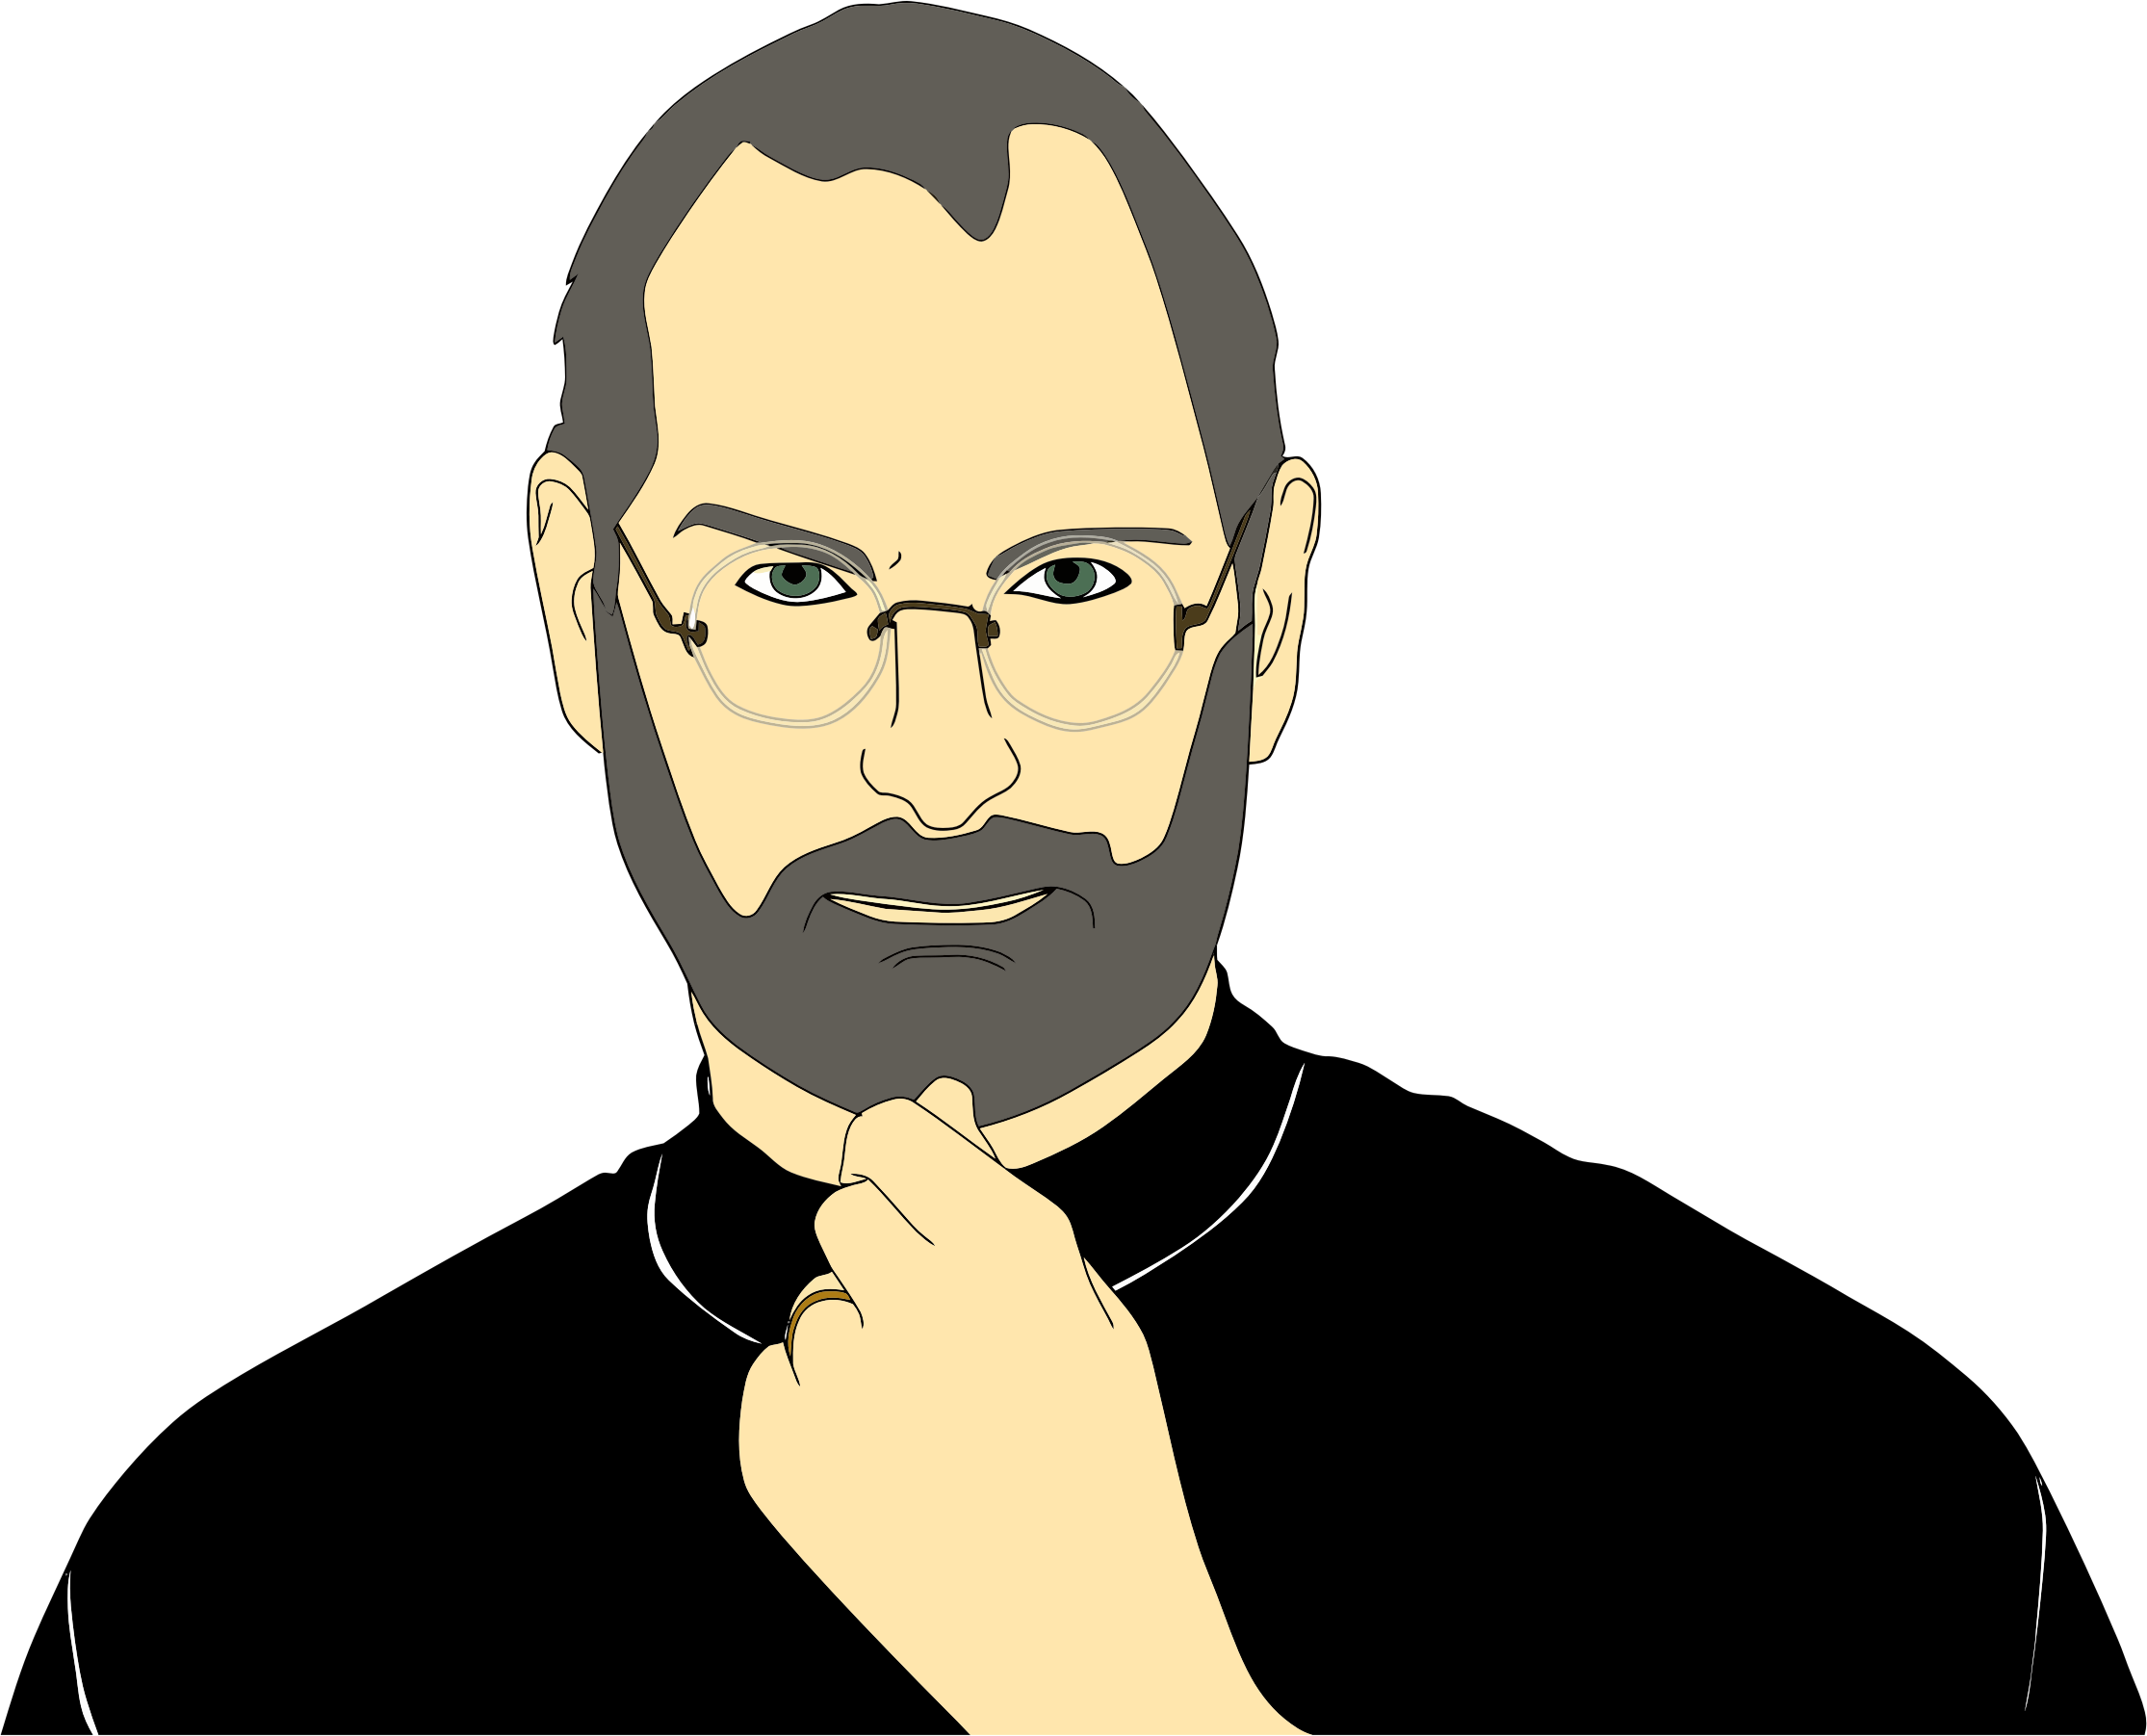 Steve Jobs Portrait by GDJ